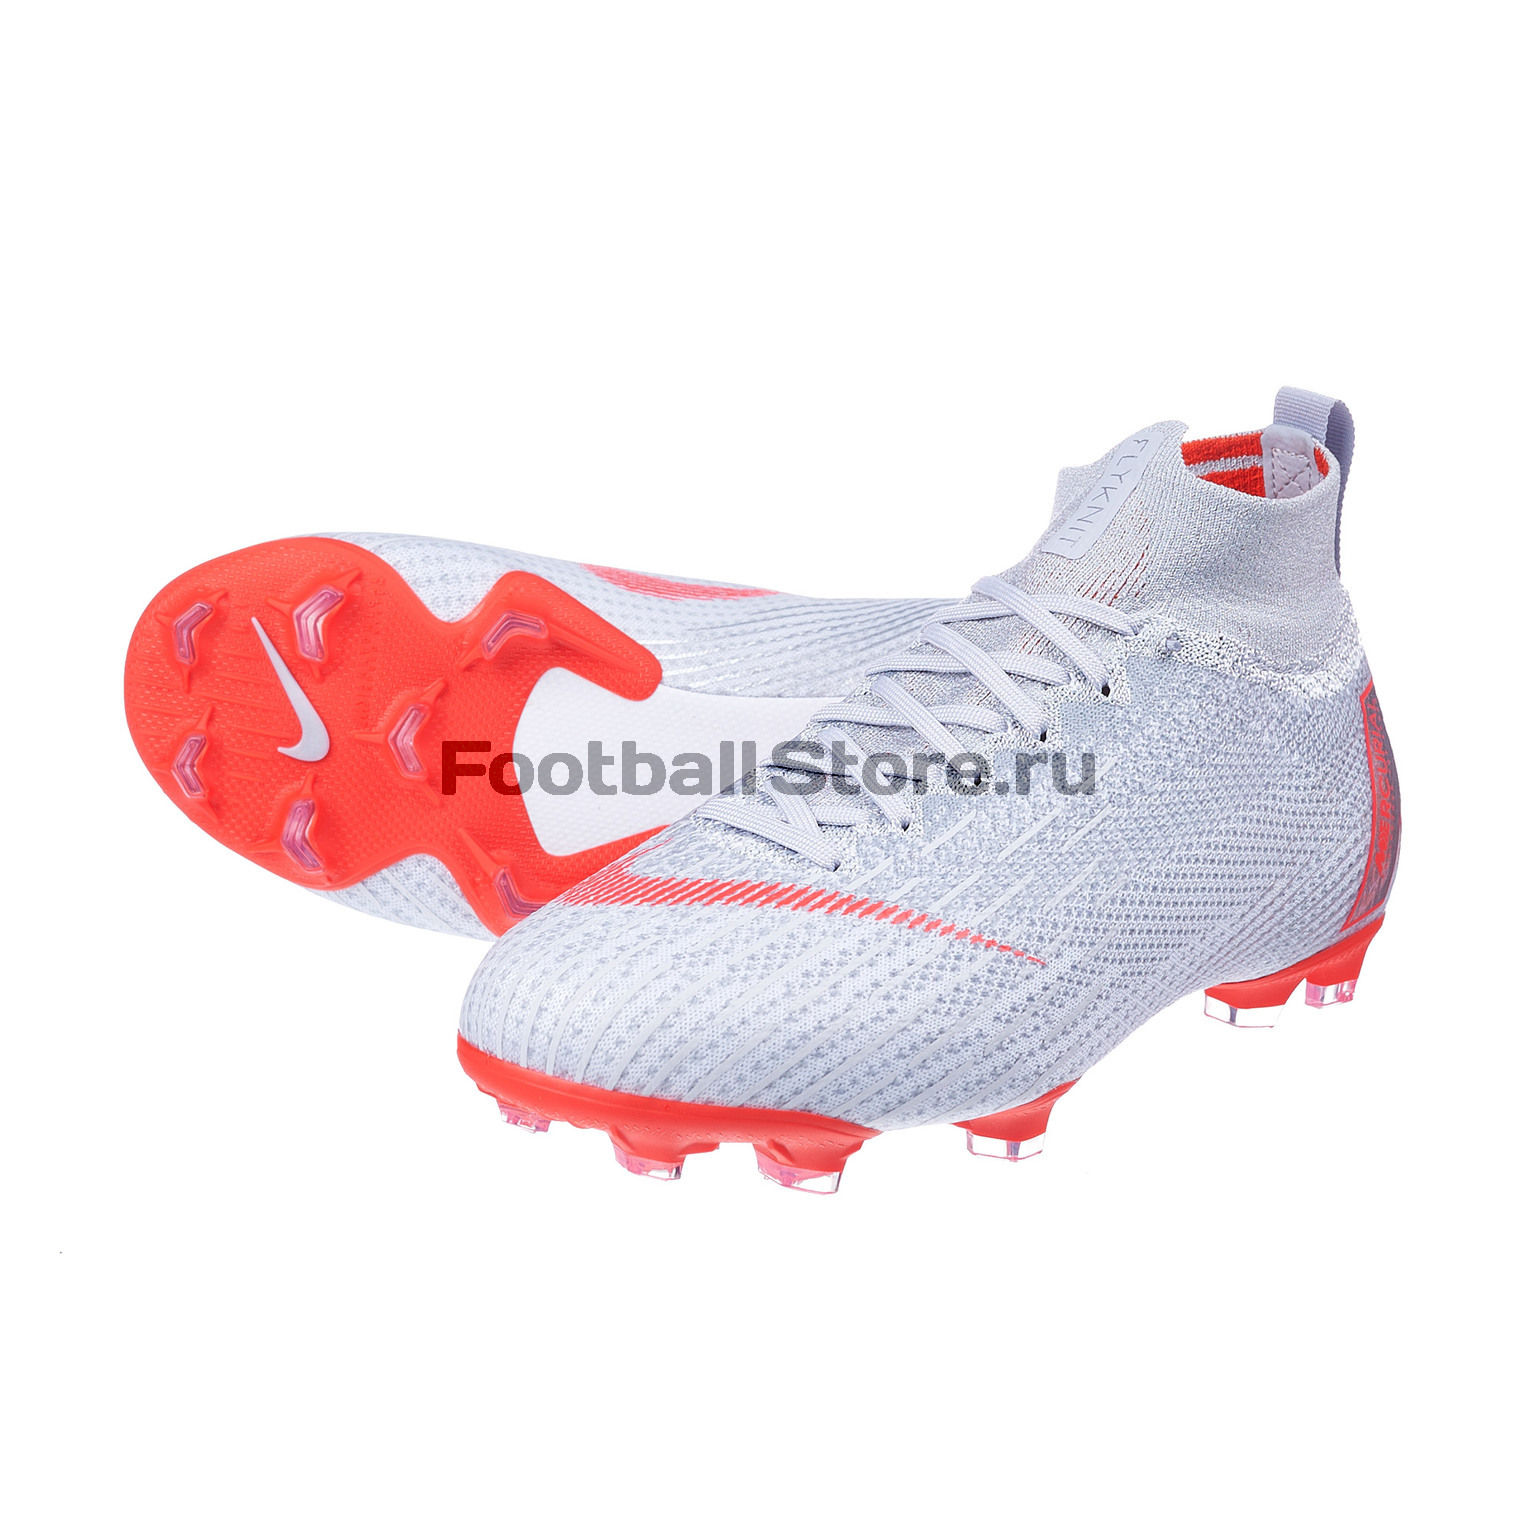 Бутсы детские Nike Superfly 6 Elite FG AH7340-060